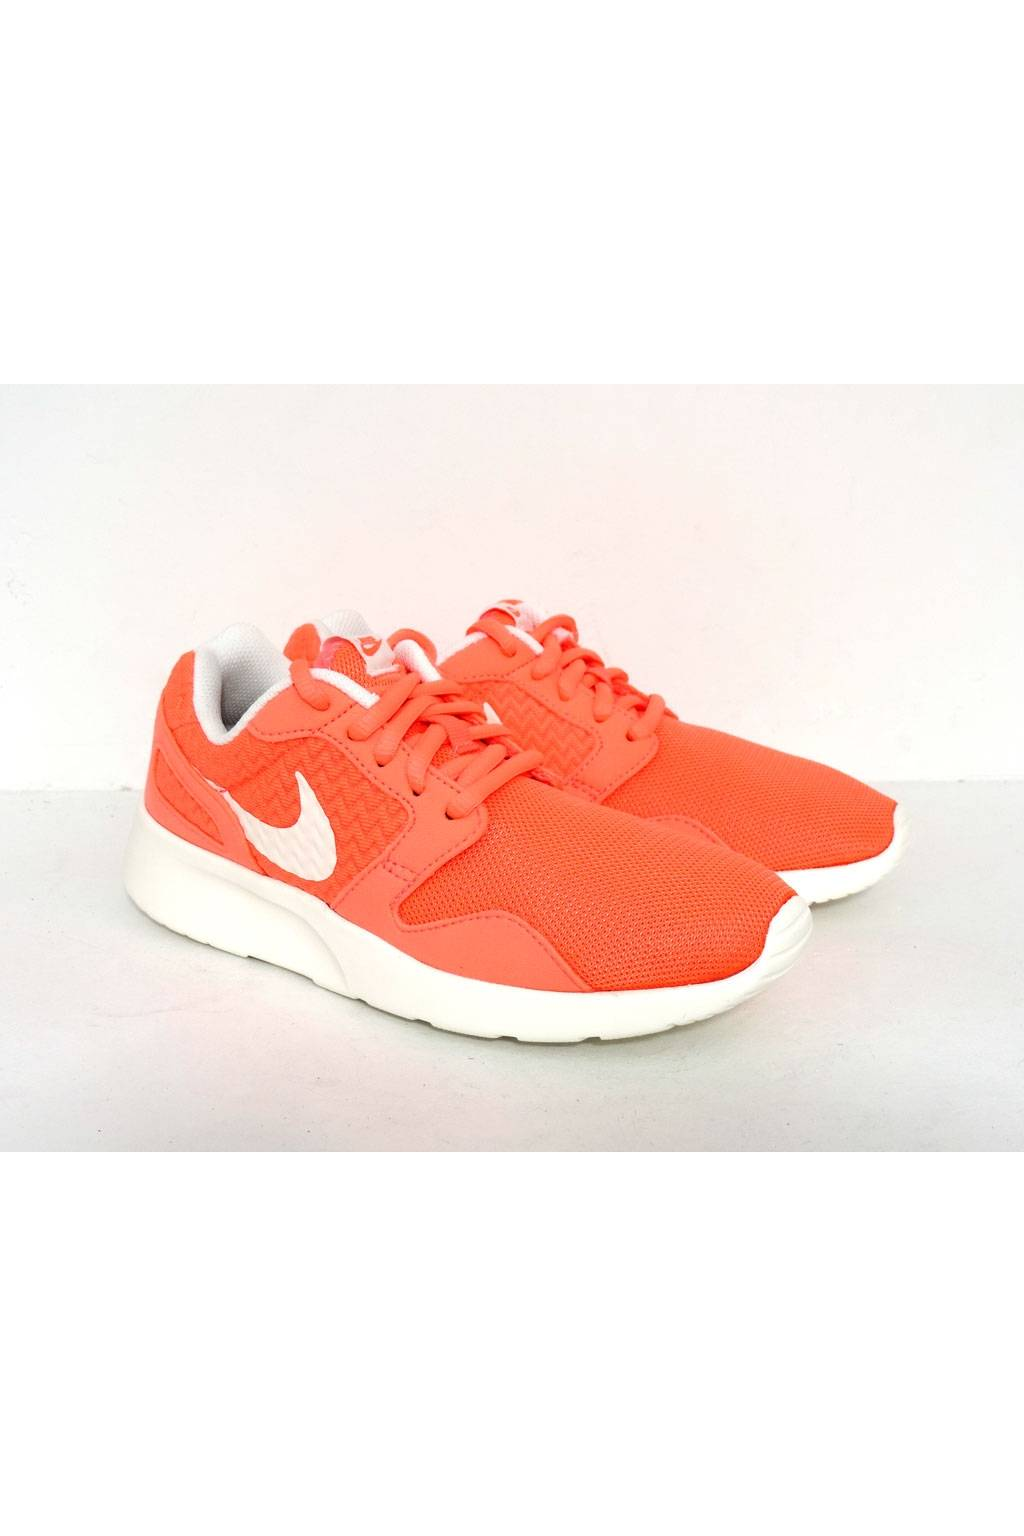 women sport shoes nike kaishi run wmns bright mango rh medinapiel es